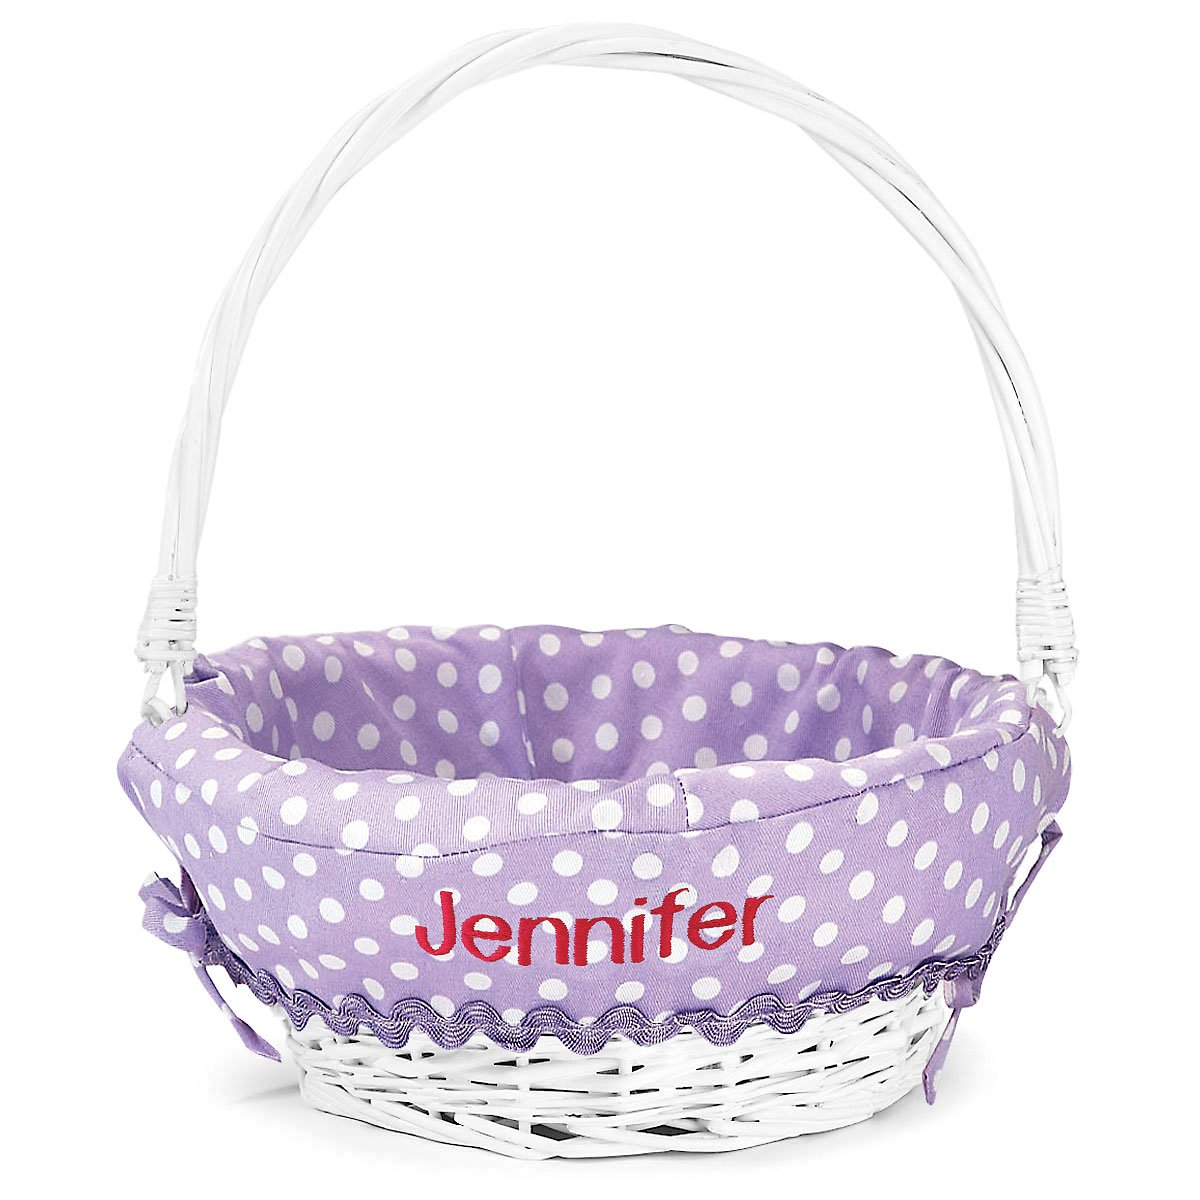 Lillian Vernon Personalized Lavender Easter Basket for Girls & Boys, 11'' x 14'' white wicker basket with Purple Polka Dot Liner, Custom embroidered with your Child's Name